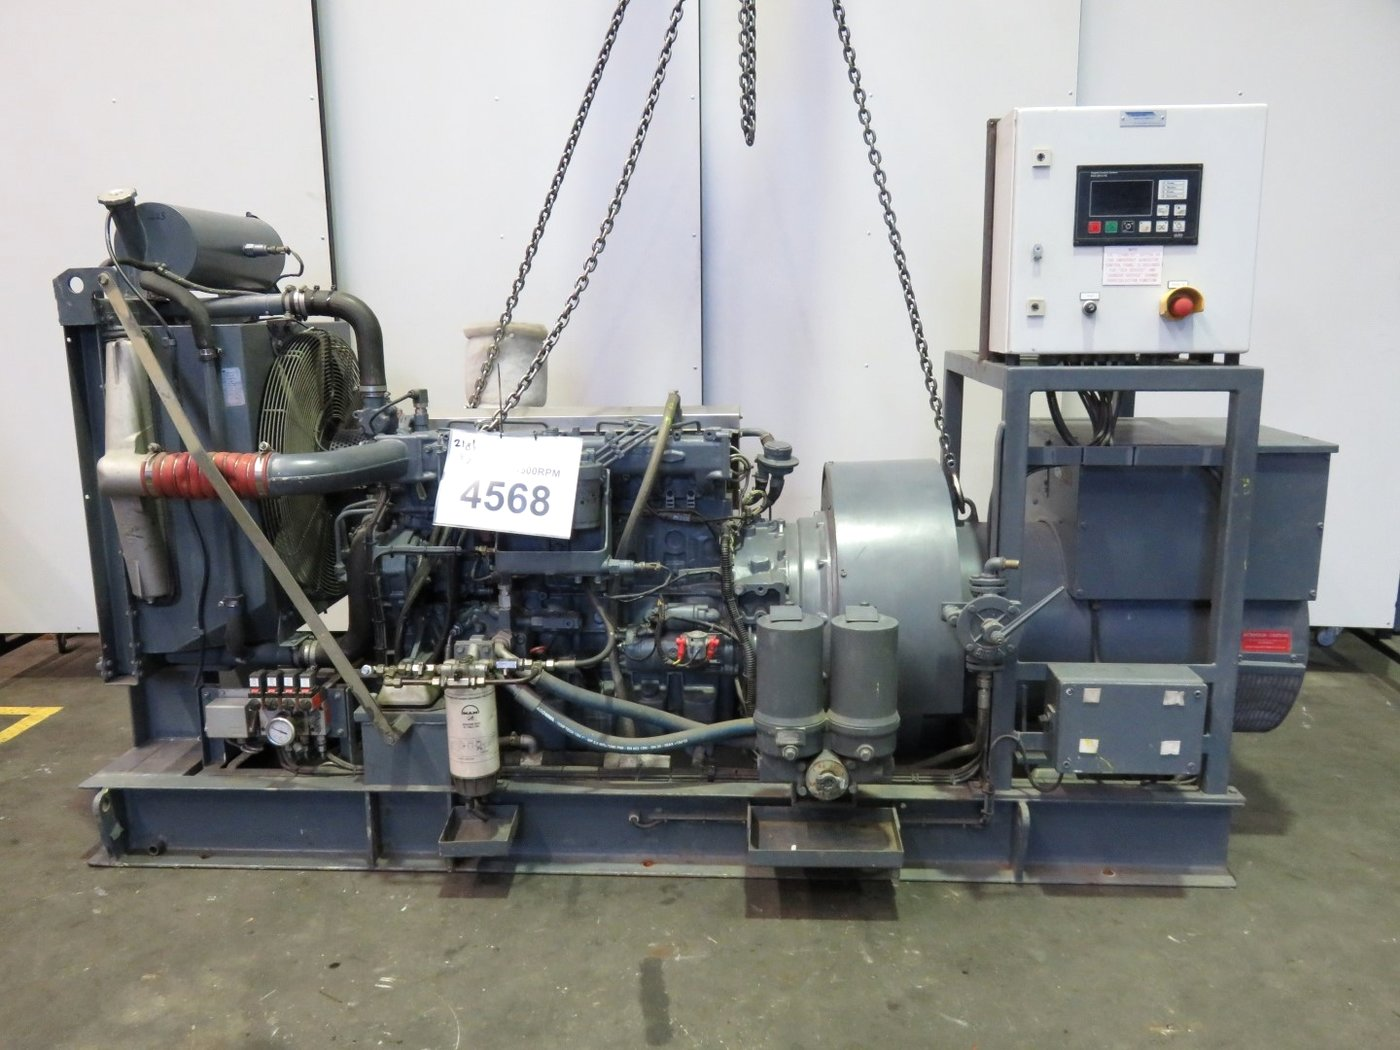 Used industrial generator sets